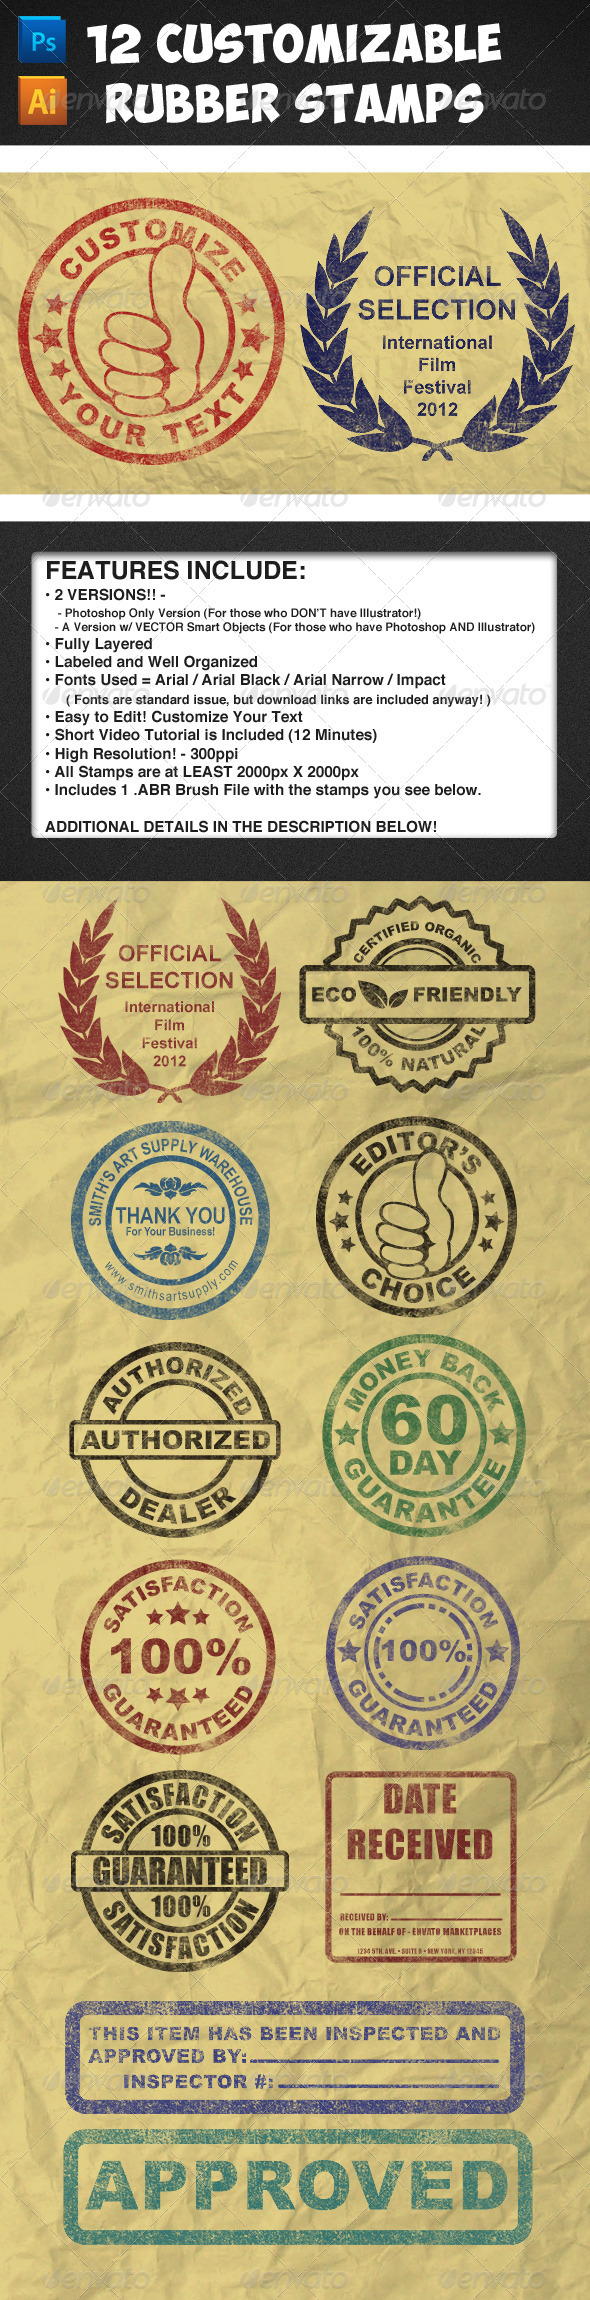 GraphicRiver 12 Customizable Rubber Stamps Vol 1 3838059